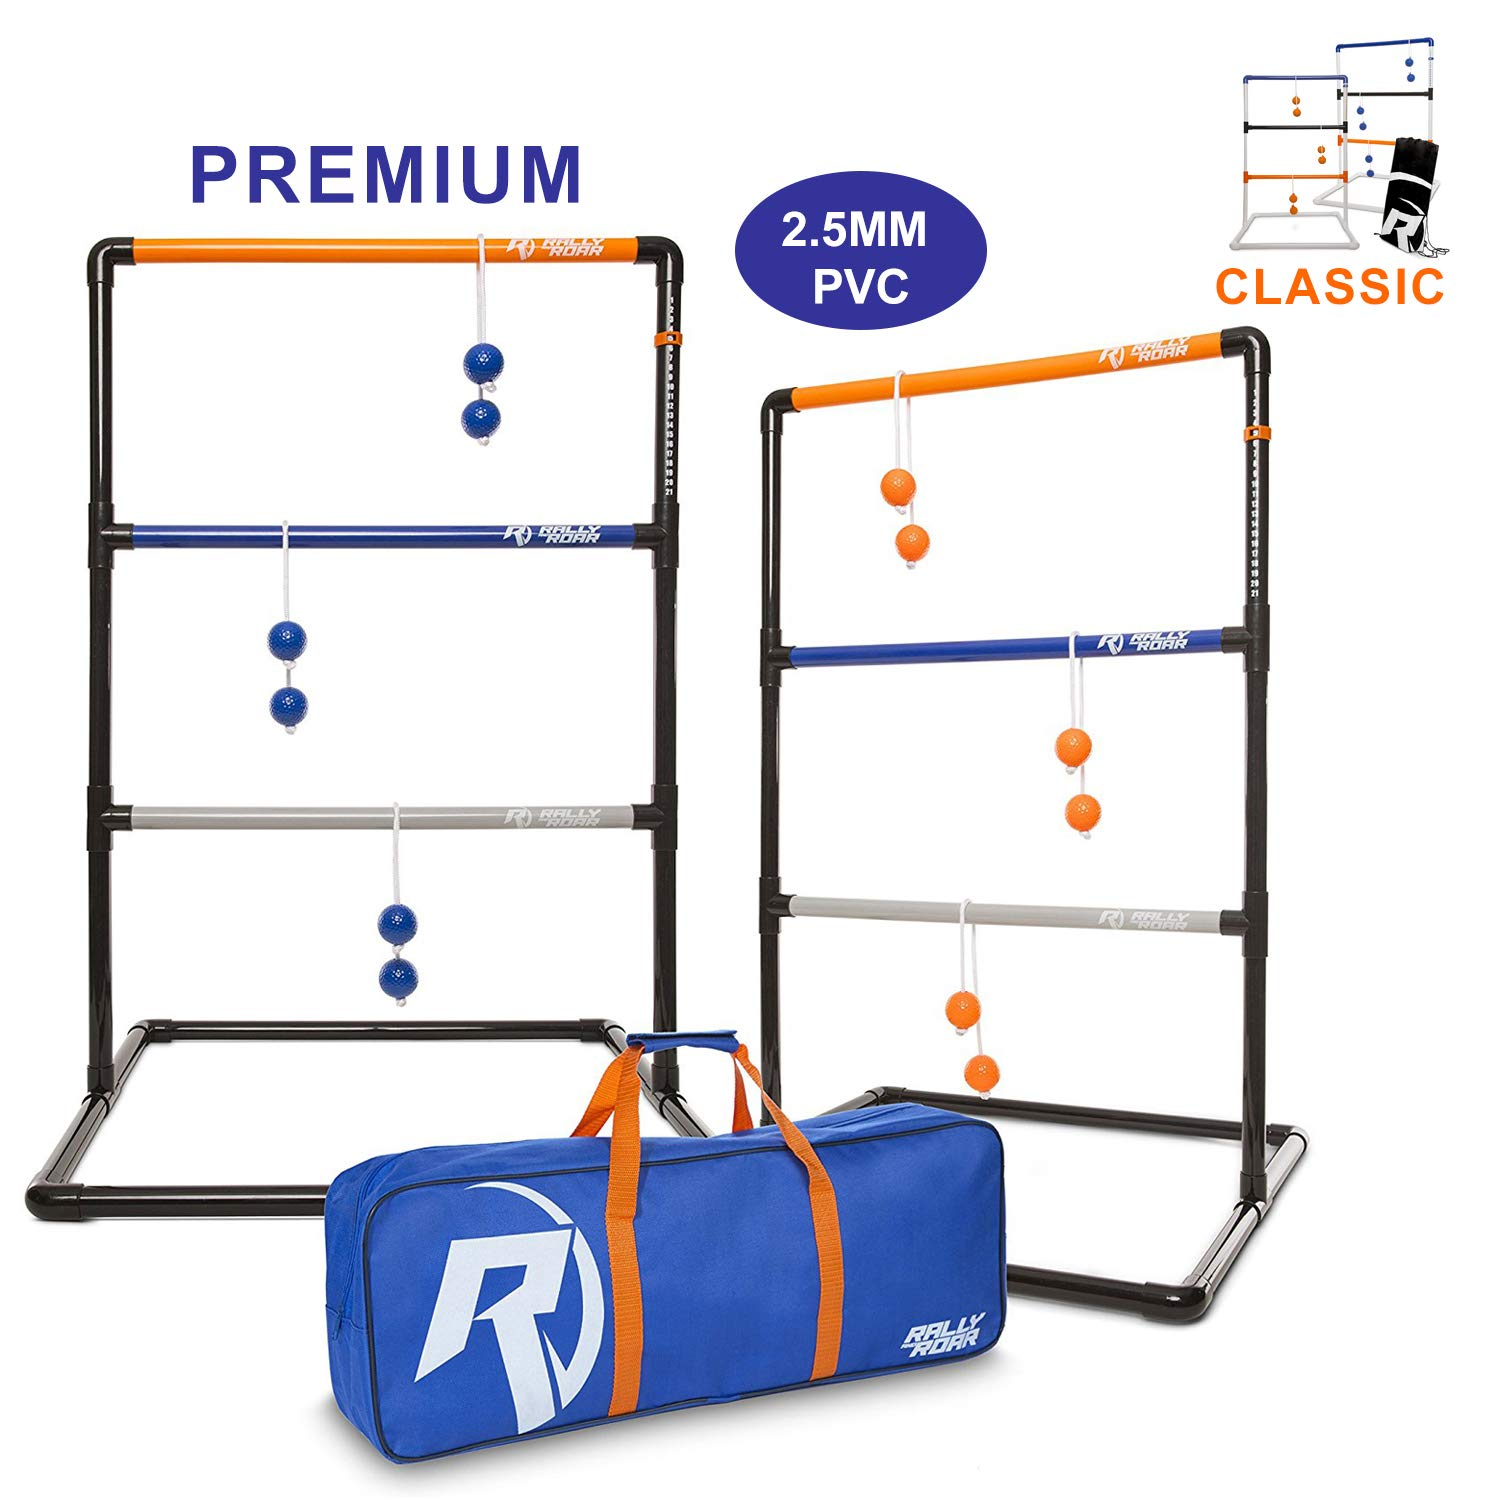 Rally and Raor Premium Ladder Ball Toss Game for Adults, Family - Outdoor Ladders Set with Canvas Bag, Resin Bolos, and Thick PVC Piping - Backyard Games, Activities for Parties - Pro Series